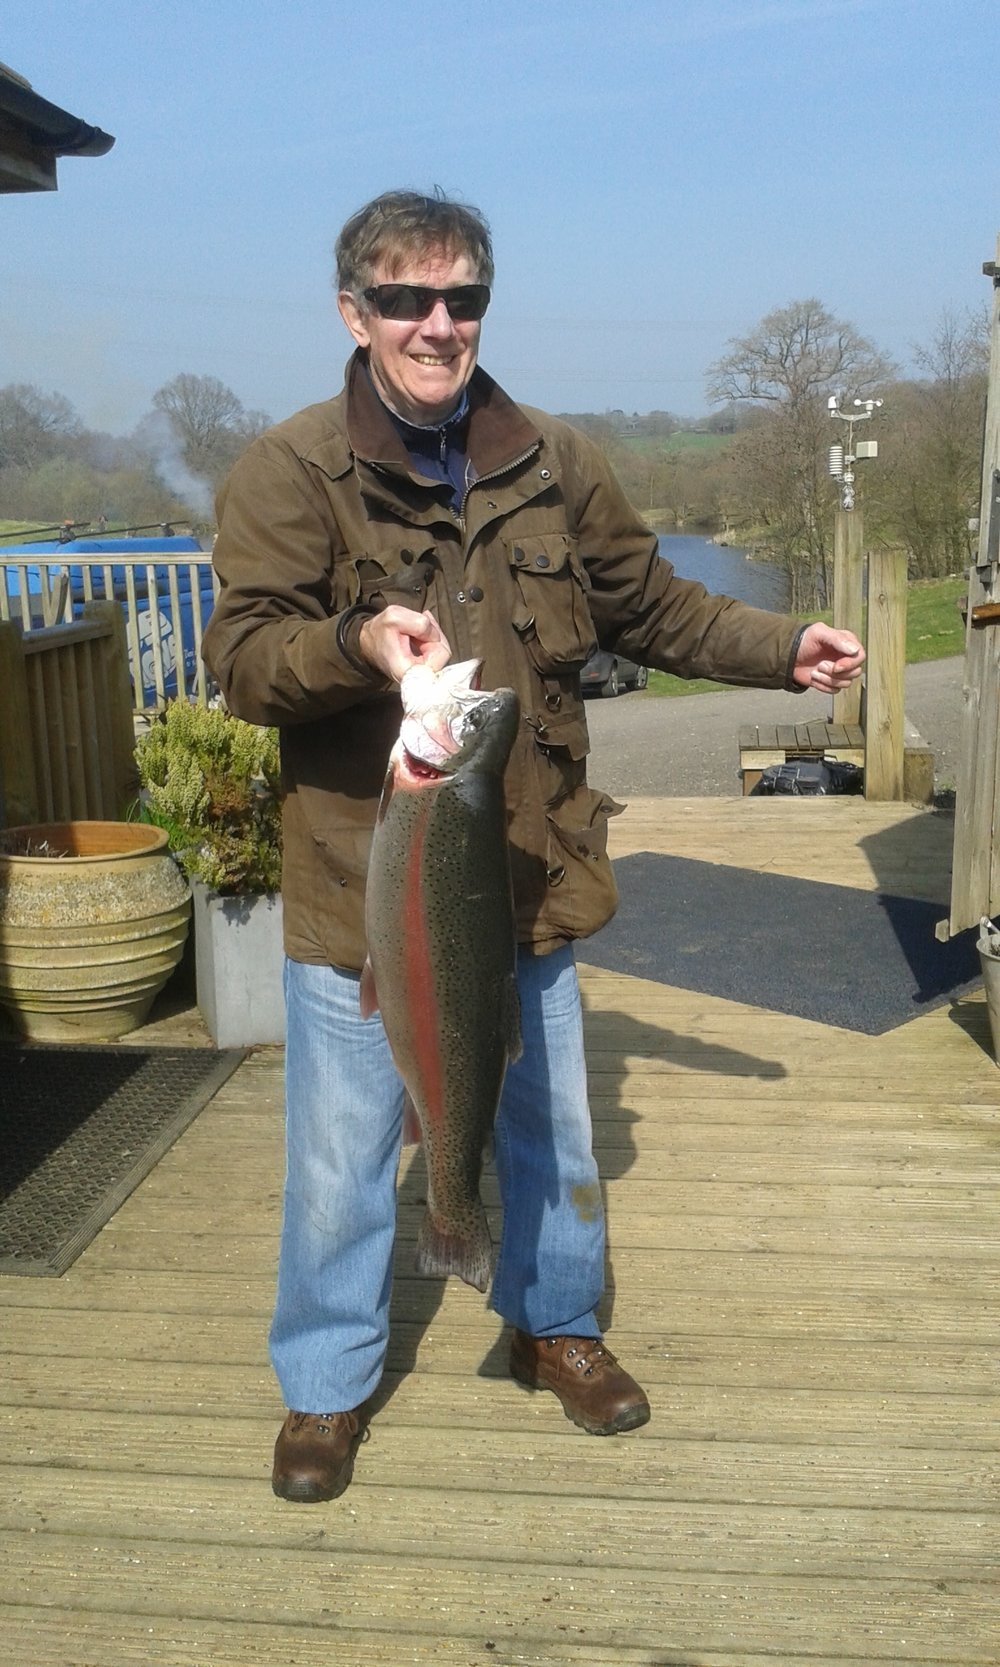 And Ian powers with a rainbow at nearly 13lbs - lovely to see you smiling!!